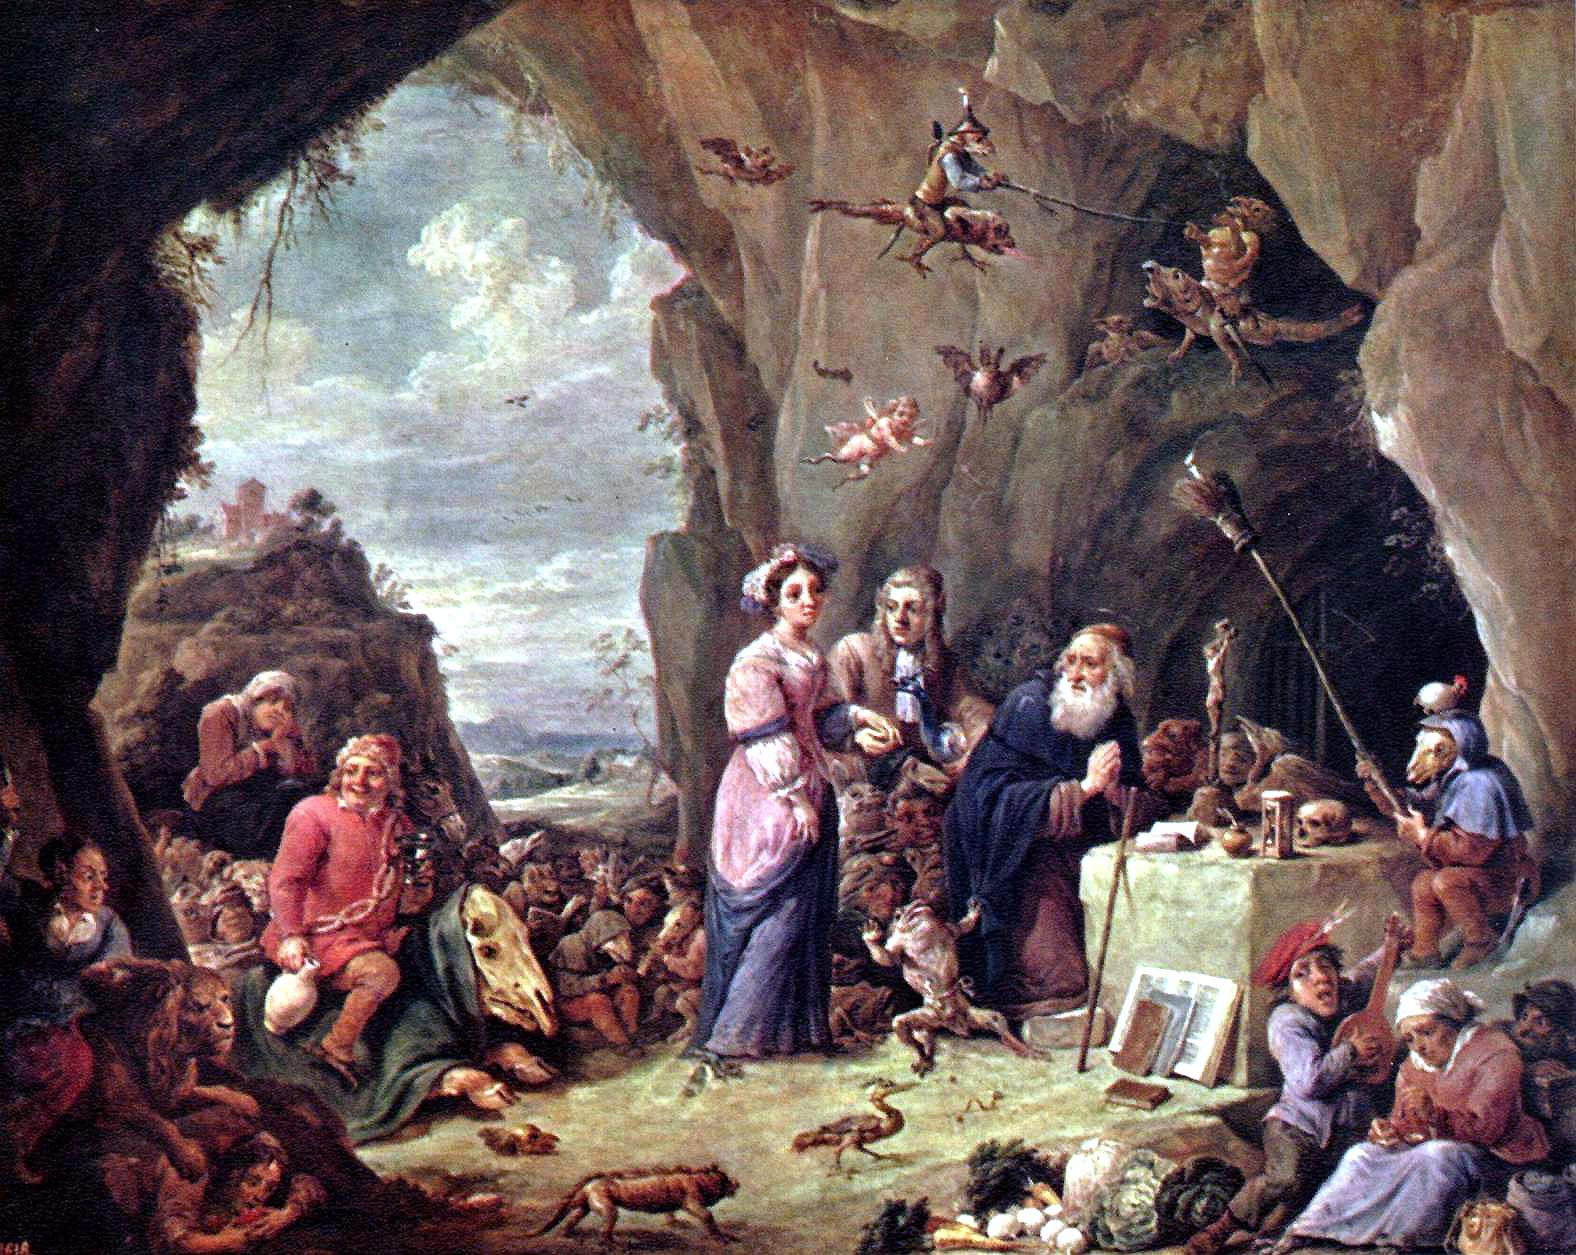 Tentation of St. Anthony by David Teniers the Younger